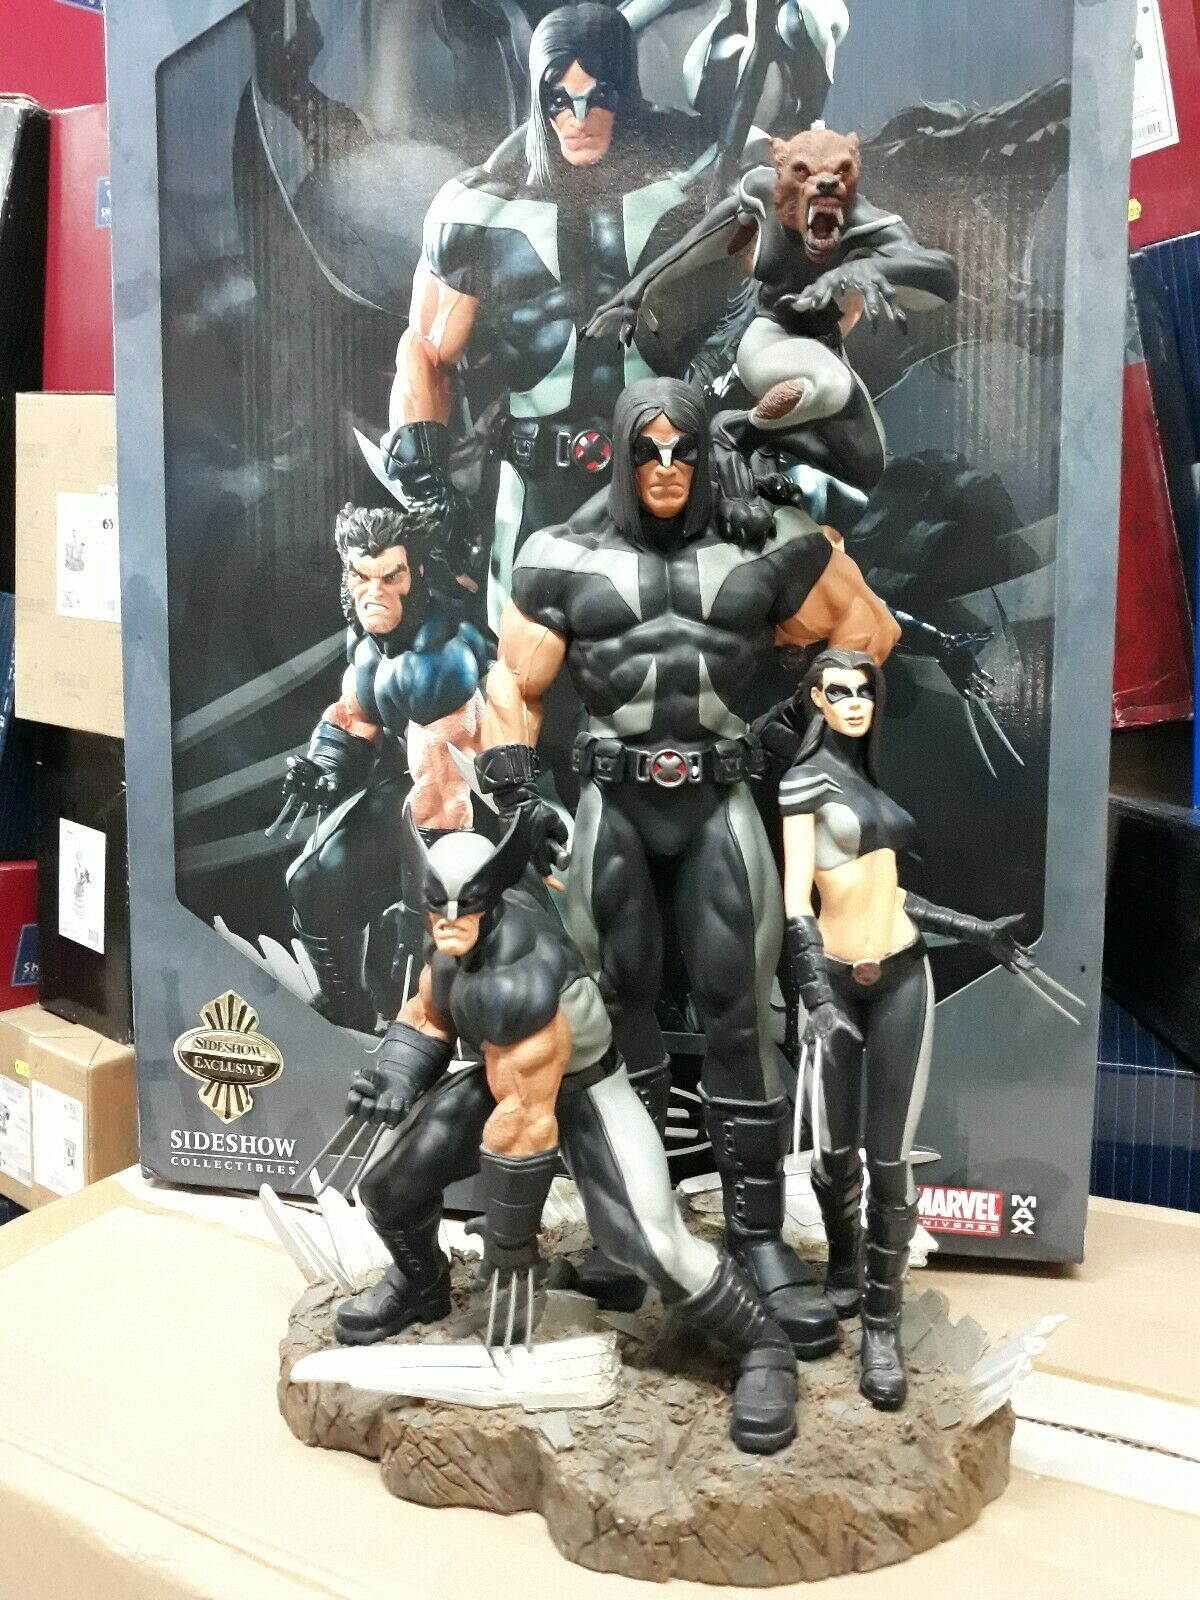 X FORCE EXCLUSIVE SIDESHOW 1 6